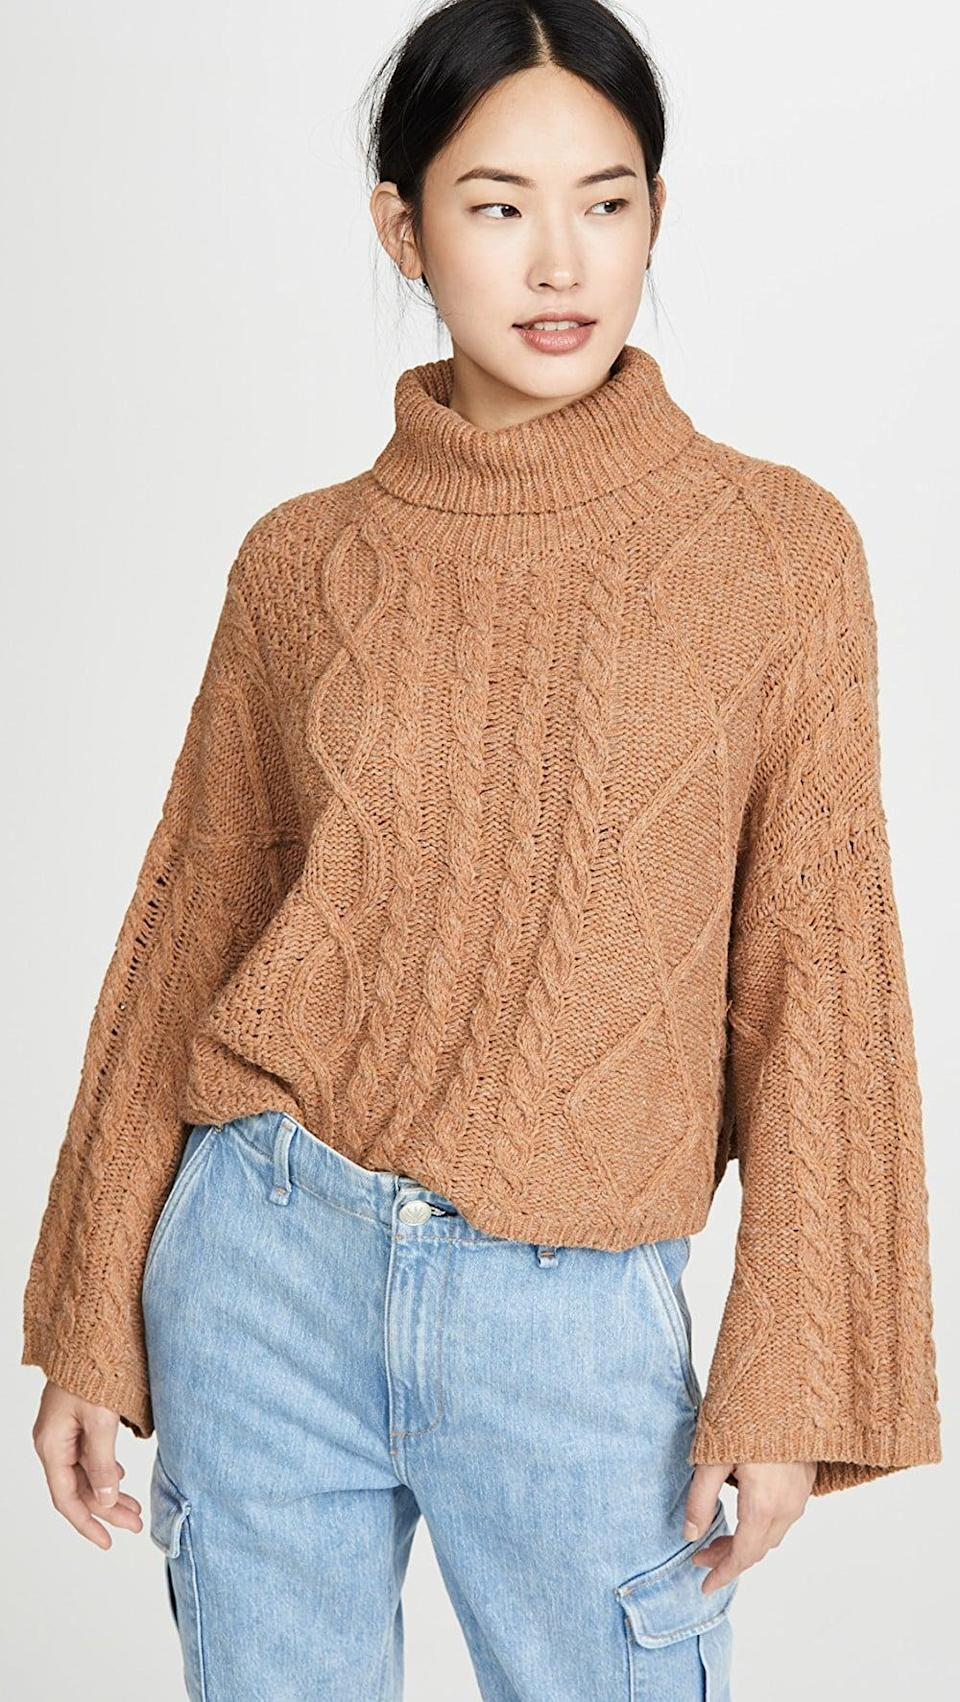 "<p>You can't go wrong with this <a href=""https://www.popsugar.com/buy/Line-amp-Dot-Kate-Cropped-Sweater-532941?p_name=Line%20%26amp%3B%20Dot%20Kate%20Cropped%20Sweater&retailer=shopbop.com&pid=532941&price=92&evar1=fab%3Aus&evar9=36291197&evar98=https%3A%2F%2Fwww.popsugar.com%2Ffashion%2Fphoto-gallery%2F36291197%2Fimage%2F47027888%2FLine-Dot-Kate-Cropped-Sweater&list1=shopping%2Choliday%2Cwinter%2Cgift%20guide%2Cwinter%20fashion%2Choliday%20fashion%2Cfashion%20gifts&prop13=api&pdata=1"" rel=""nofollow noopener"" class=""link rapid-noclick-resp"" target=""_blank"" data-ylk=""slk:Line & Dot Kate Cropped Sweater"">Line & Dot Kate Cropped Sweater</a> ($92).</p>"